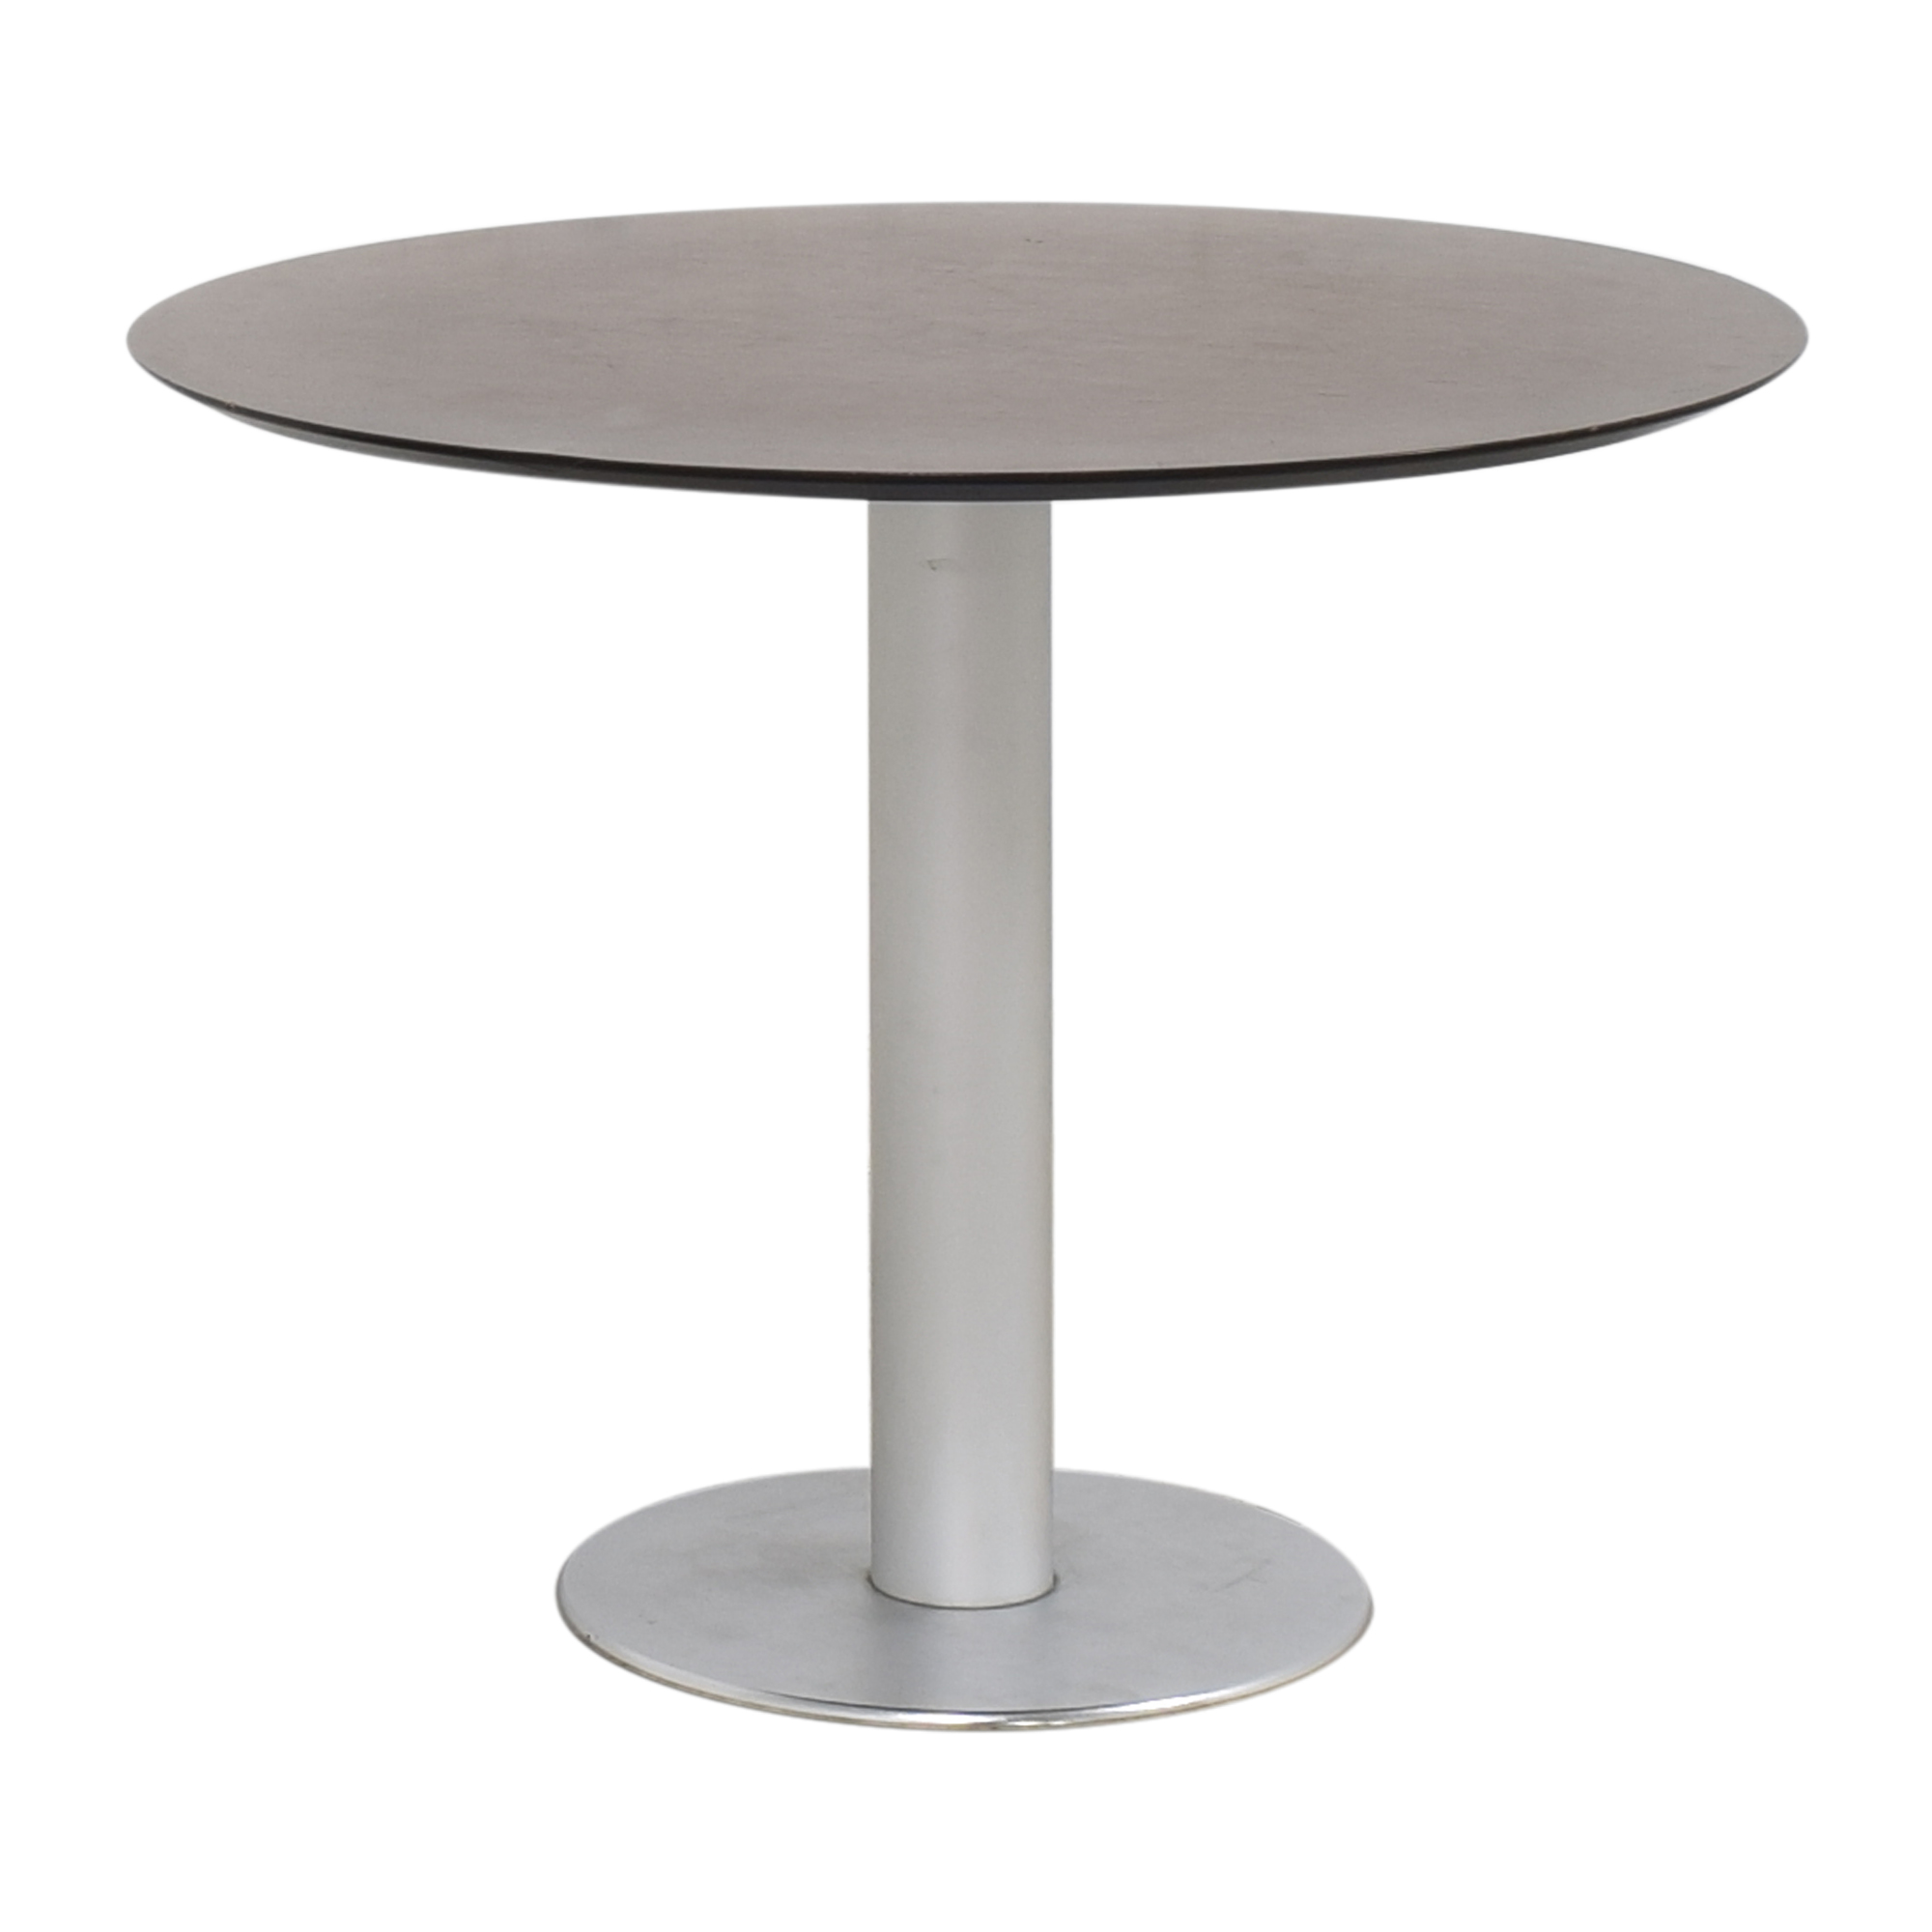 STUA Zero Dining Table / Tables